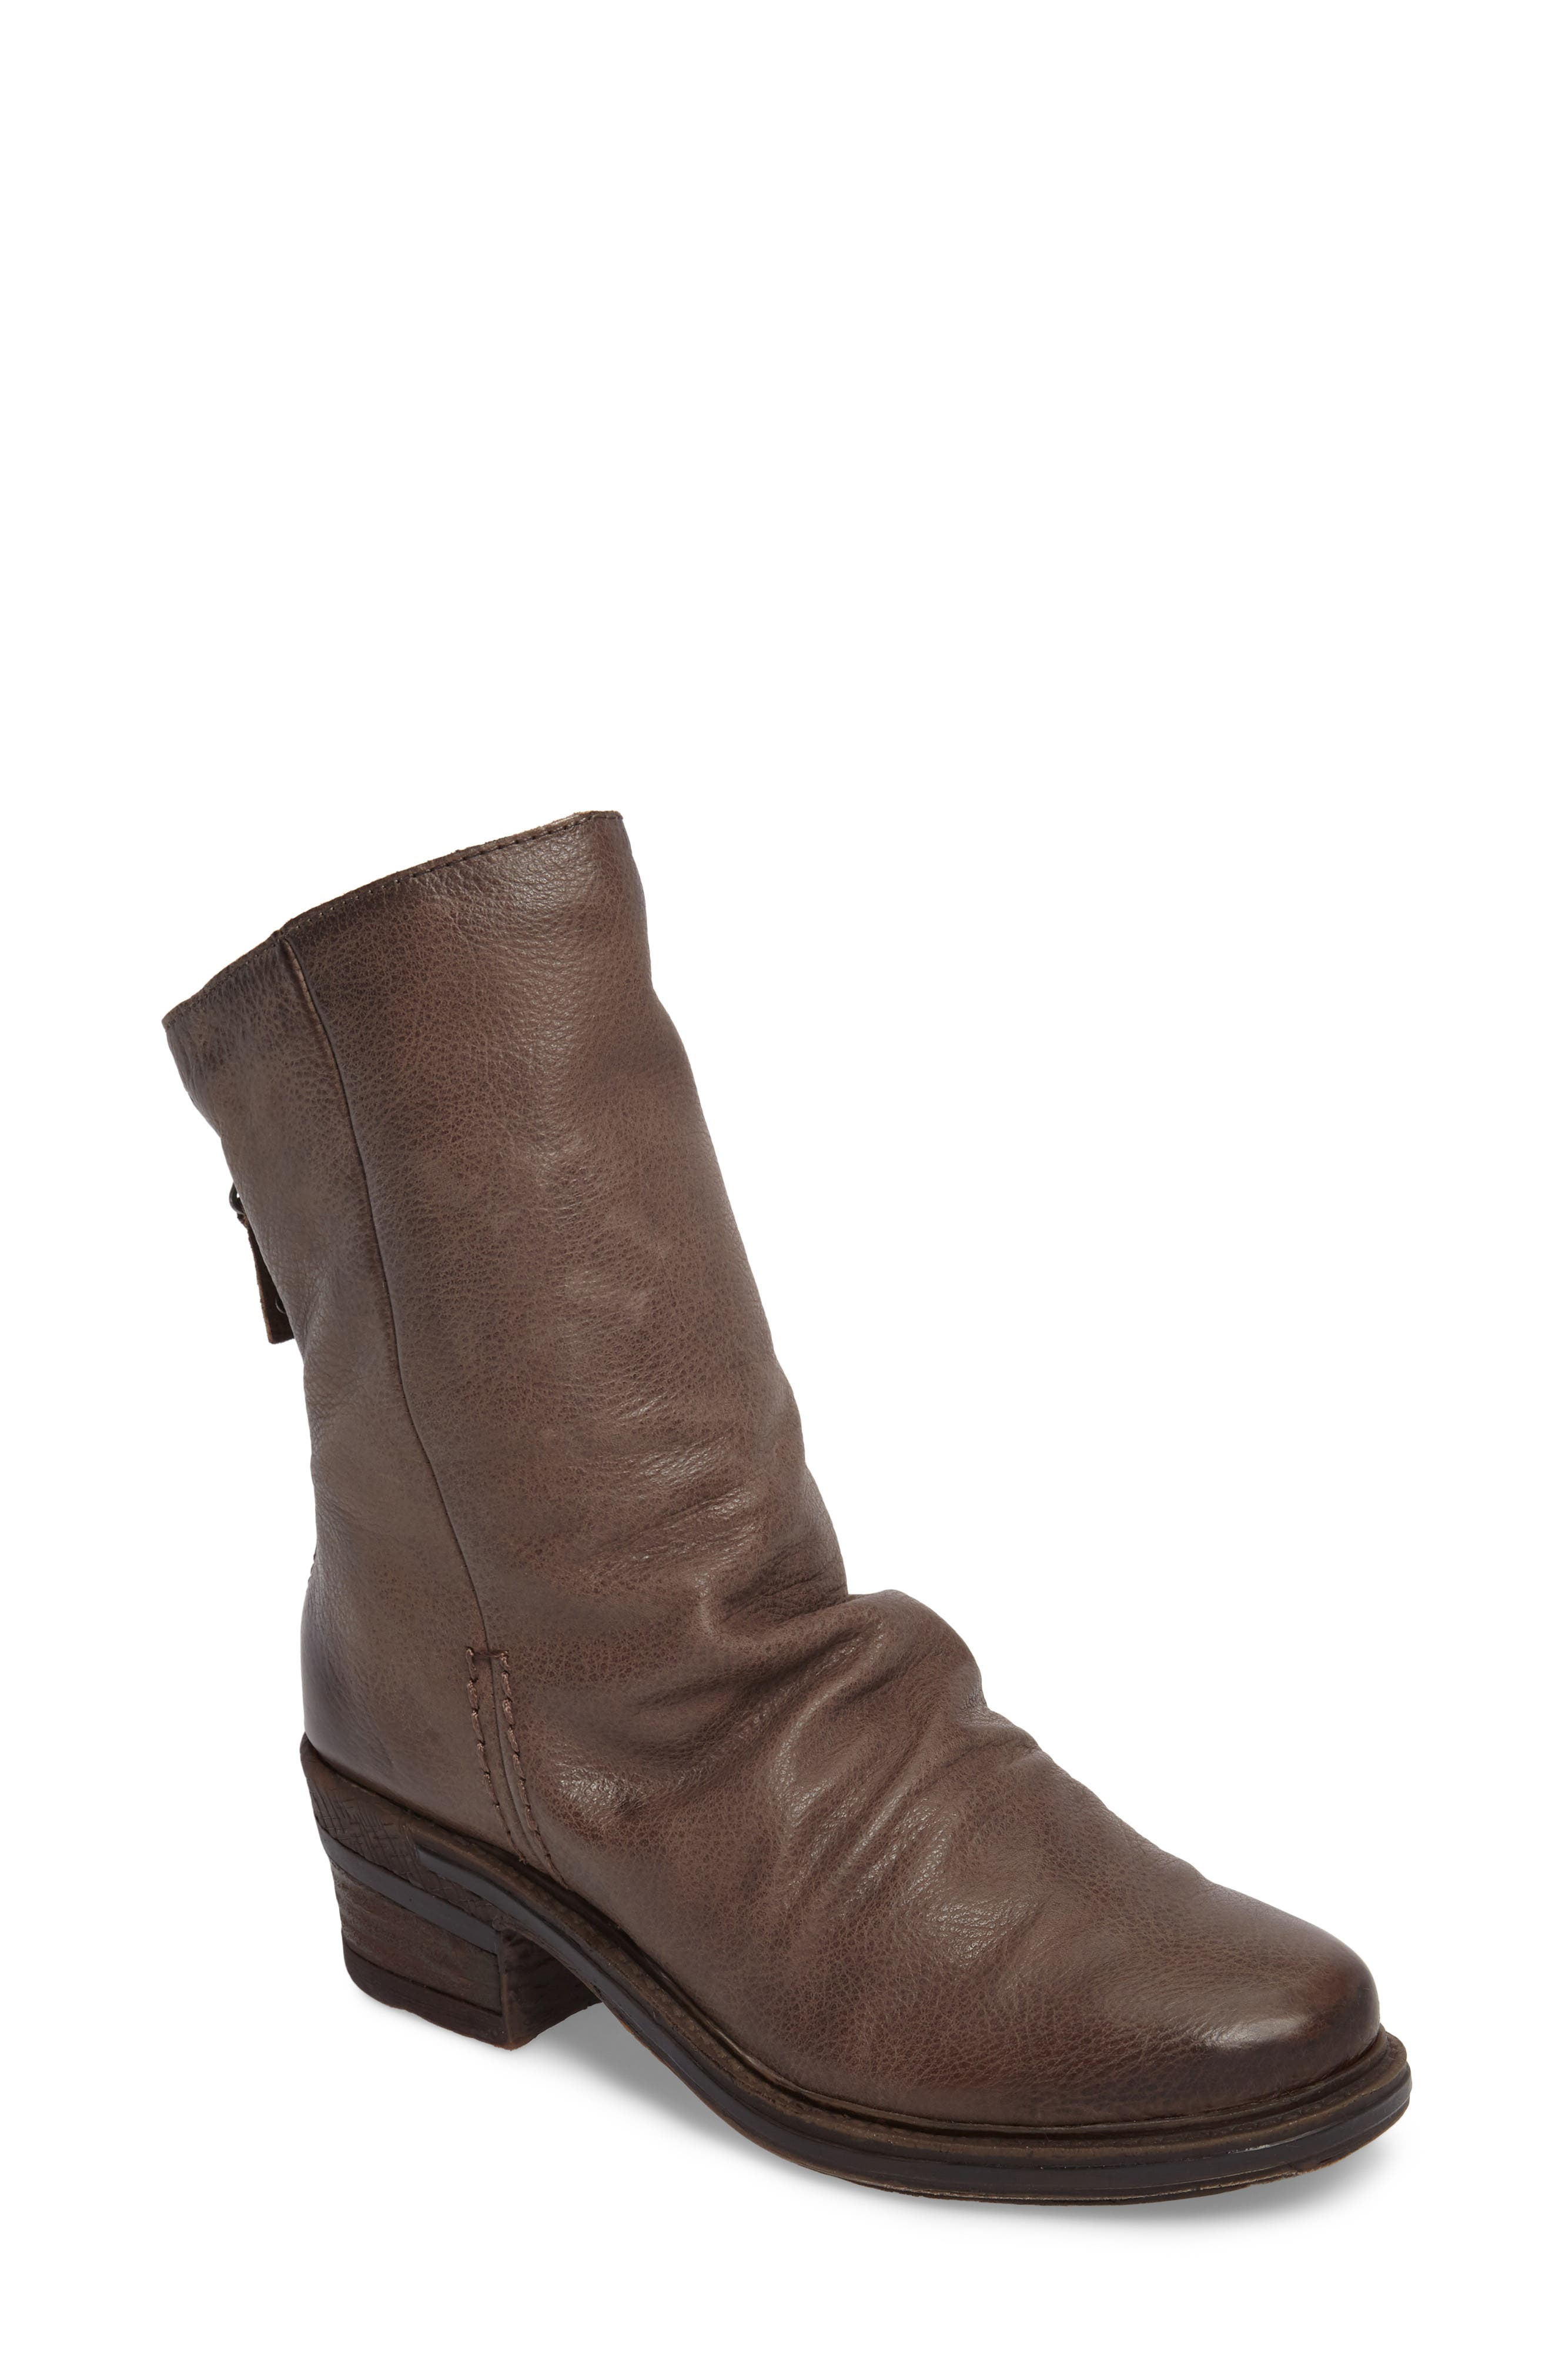 Fernweh Slouchy Bootie,                         Main,                         color, Mint Leather